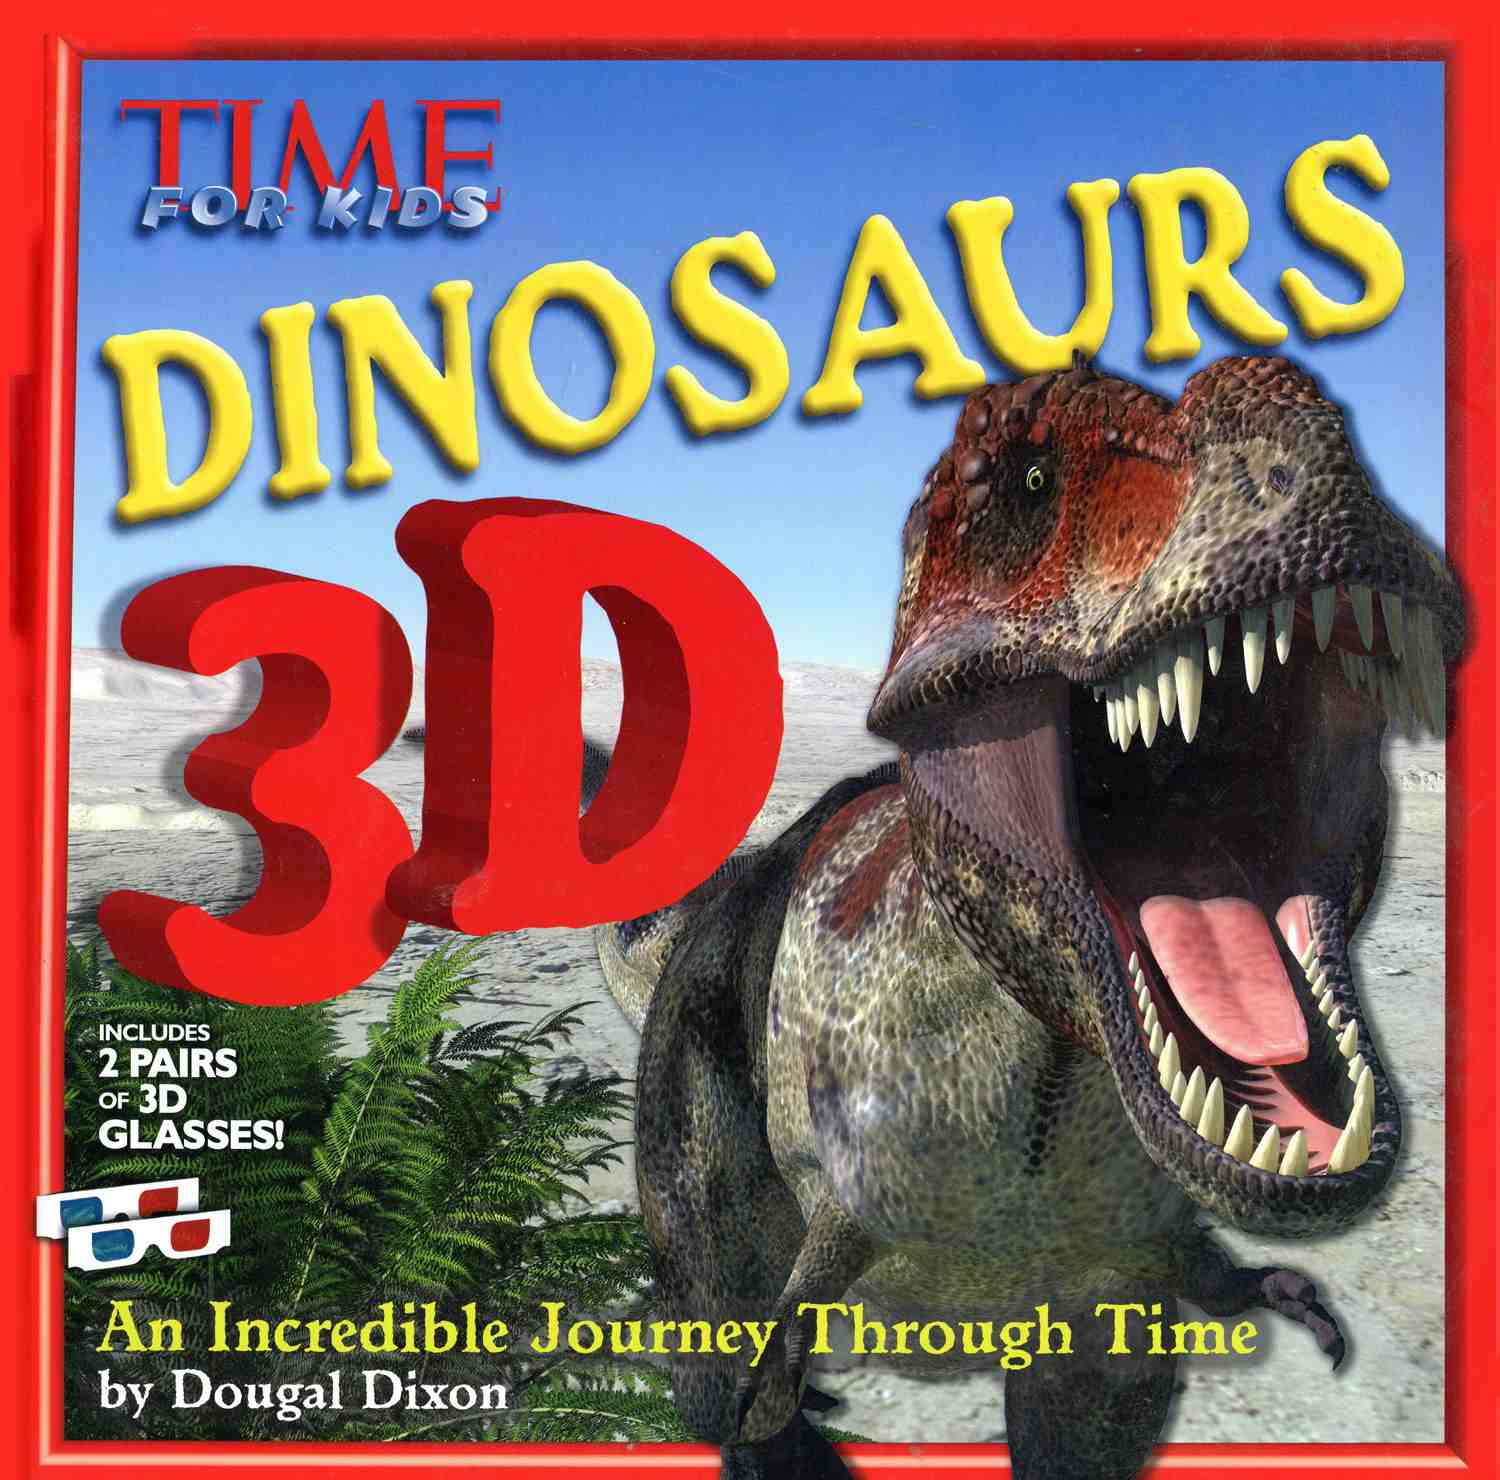 TIME For Kids Dinosaurs 3D - Book Cover